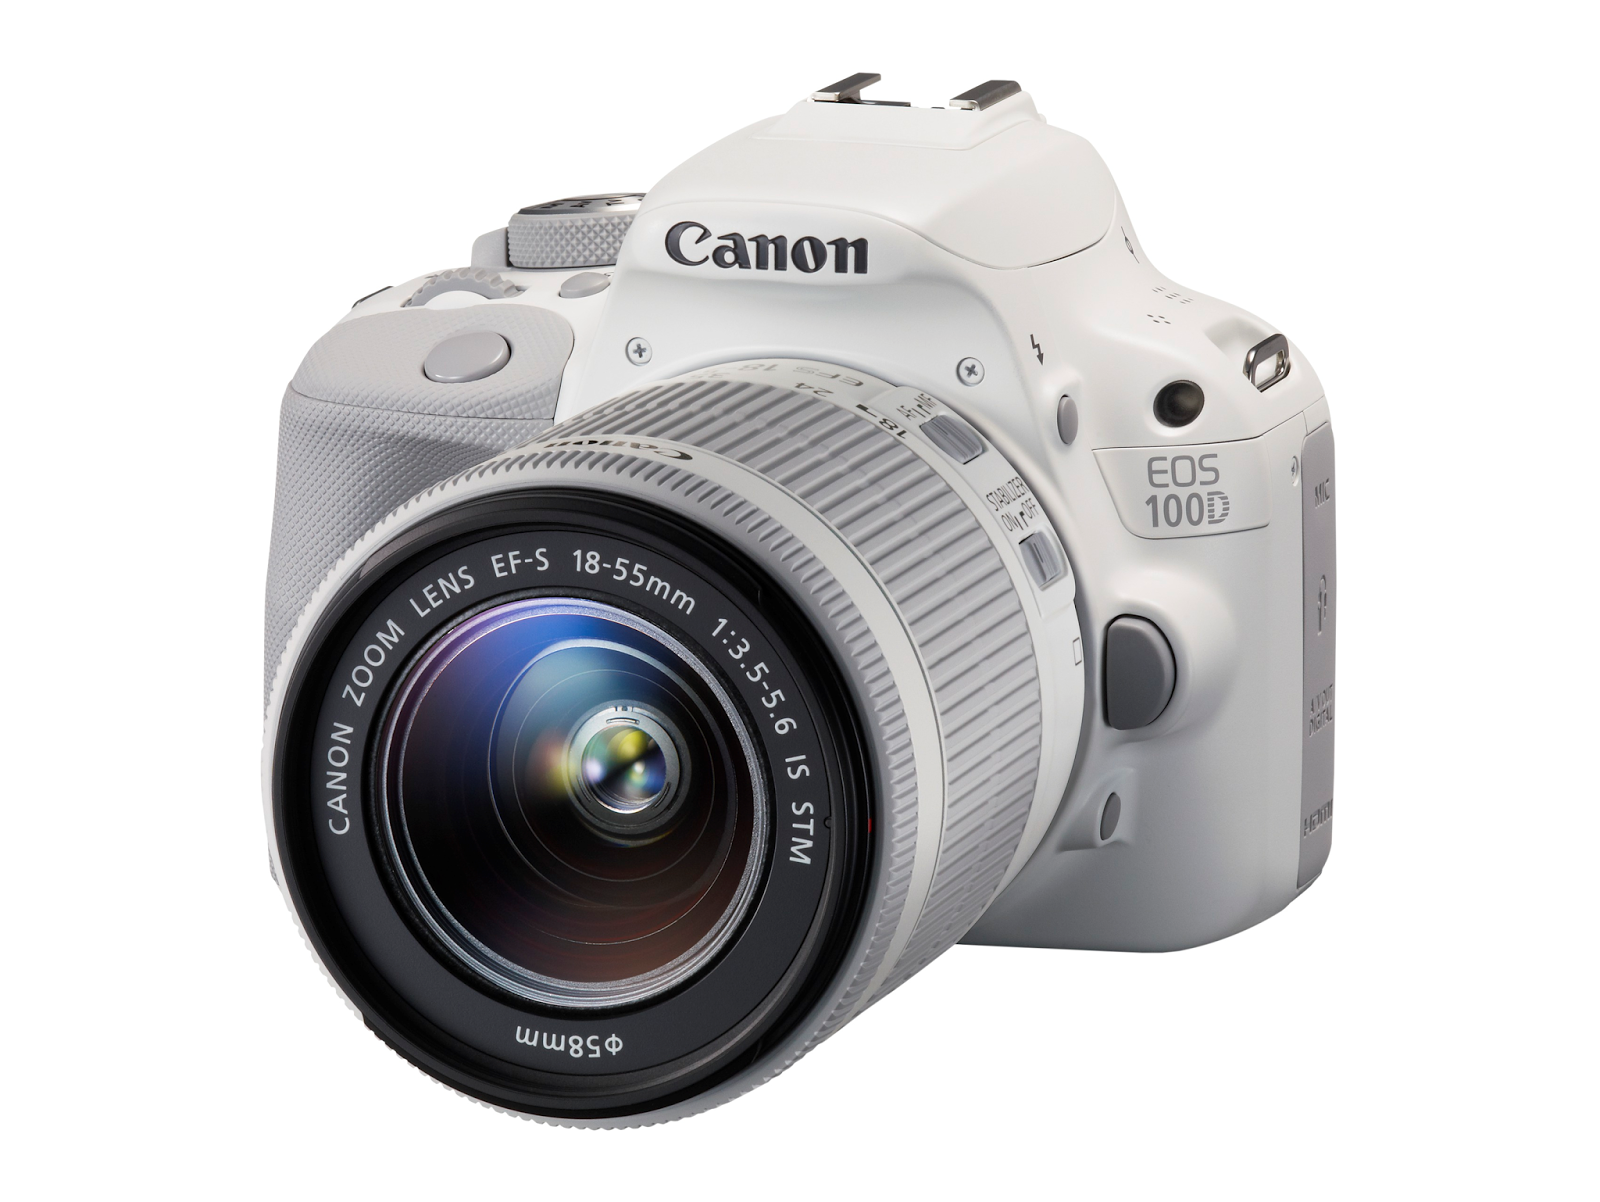 White Canon EOS Rebel SL1 Kit with EF-S 18-55mm f/3.5-5.6 IS STM Lens